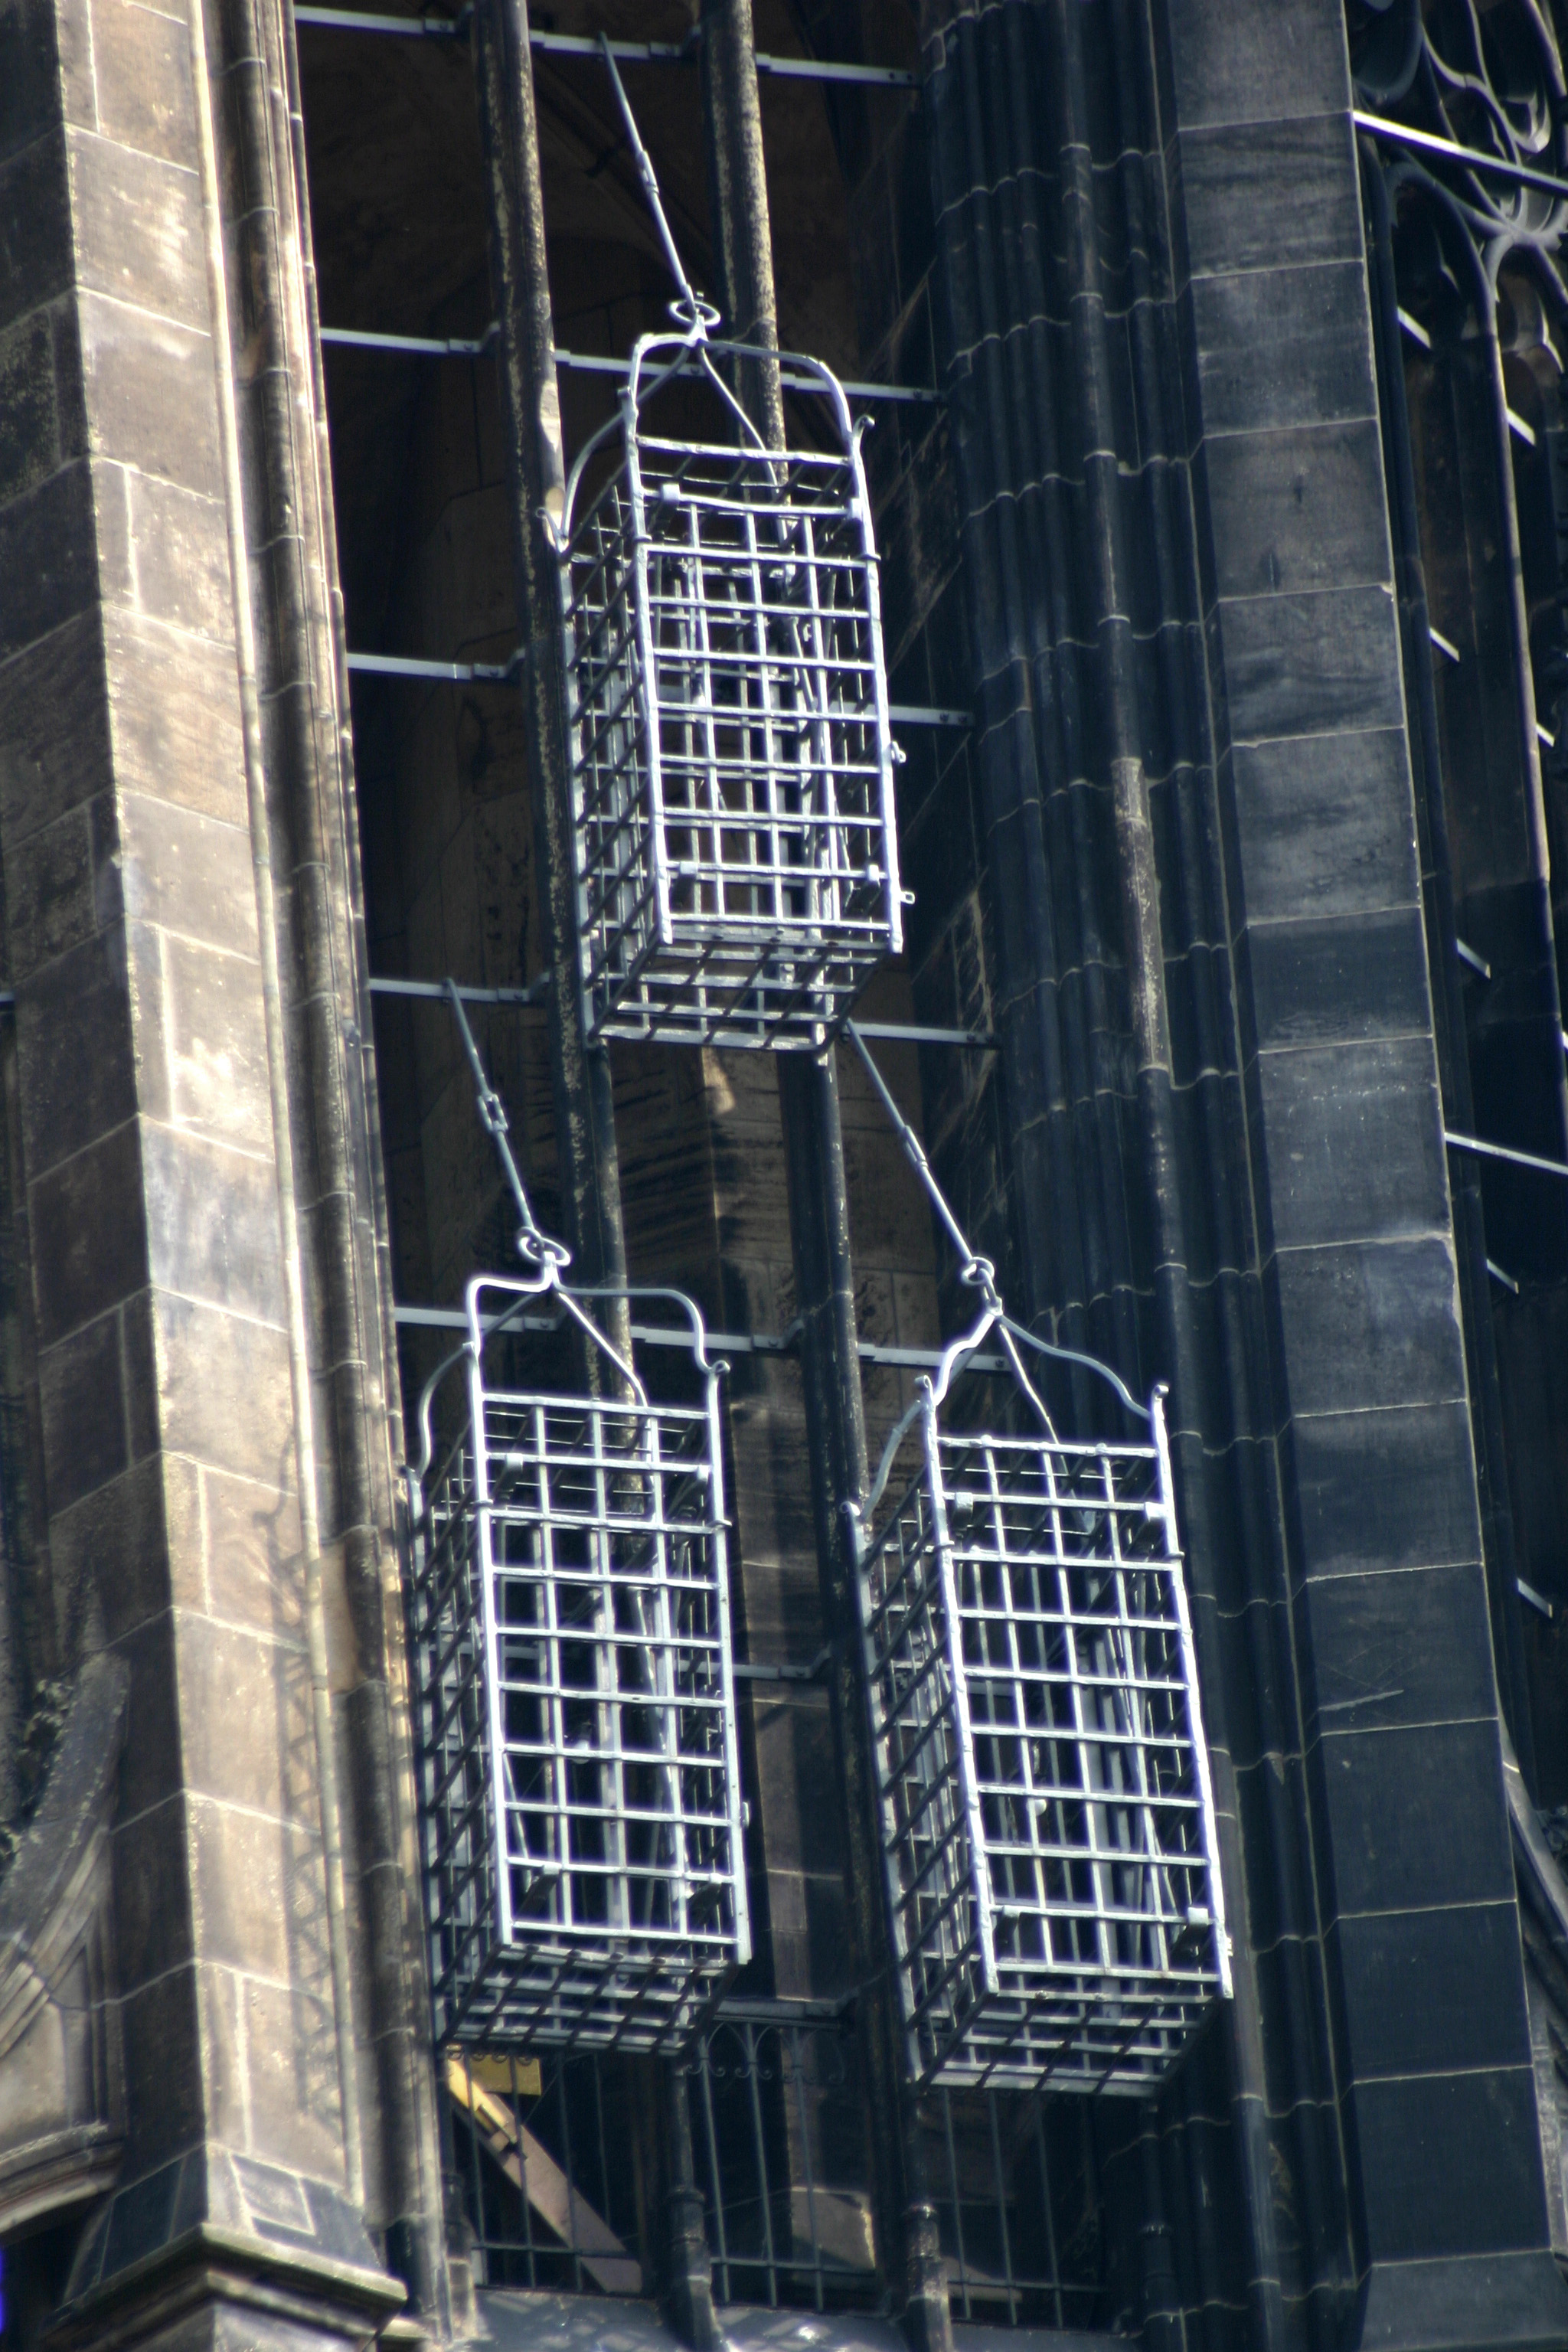 Cages of the leaders of the Münster Rebellion at the steeple of St. Lambert's Church (Photo by Rüdiger Wölk)